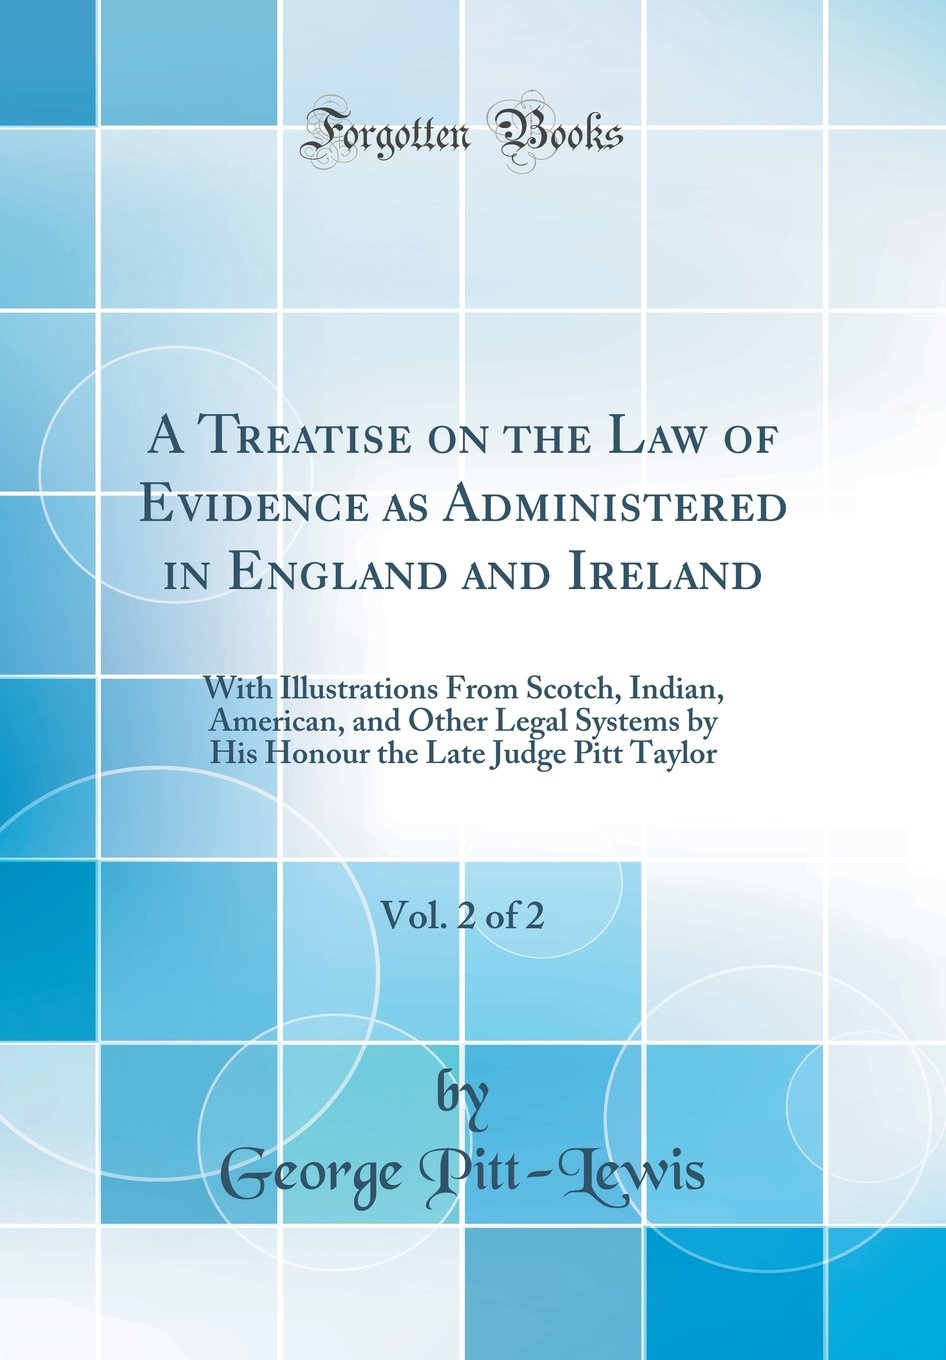 Read Online A Treatise on the Law of Evidence as Administered in England and Ireland, Vol. 2 of 2: With Illustrations from Scotch, Indian, American, and Other ... the Late Judge Pitt Taylor (Classic Reprint) PDF